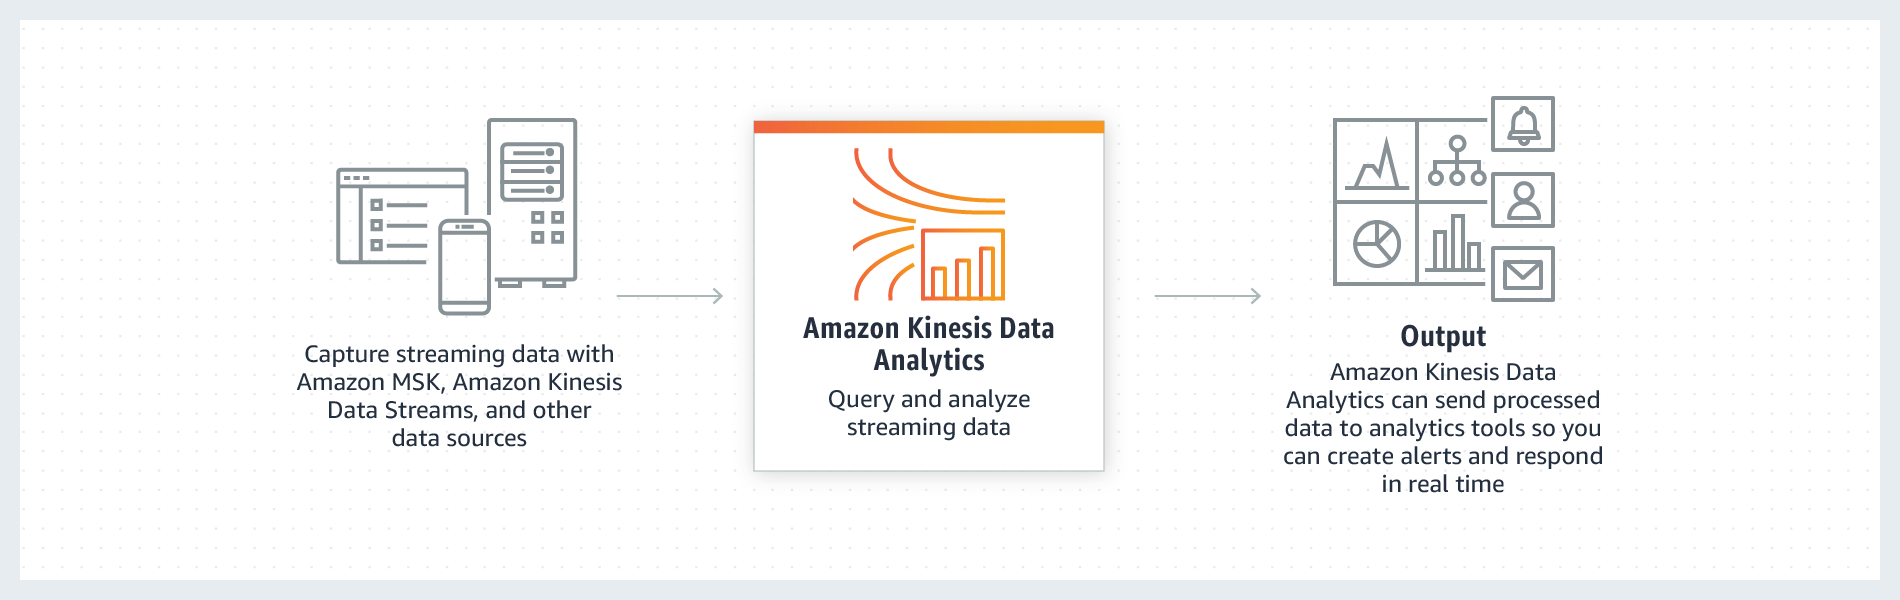 Amazon Kinesis Data Analytics 工作原理